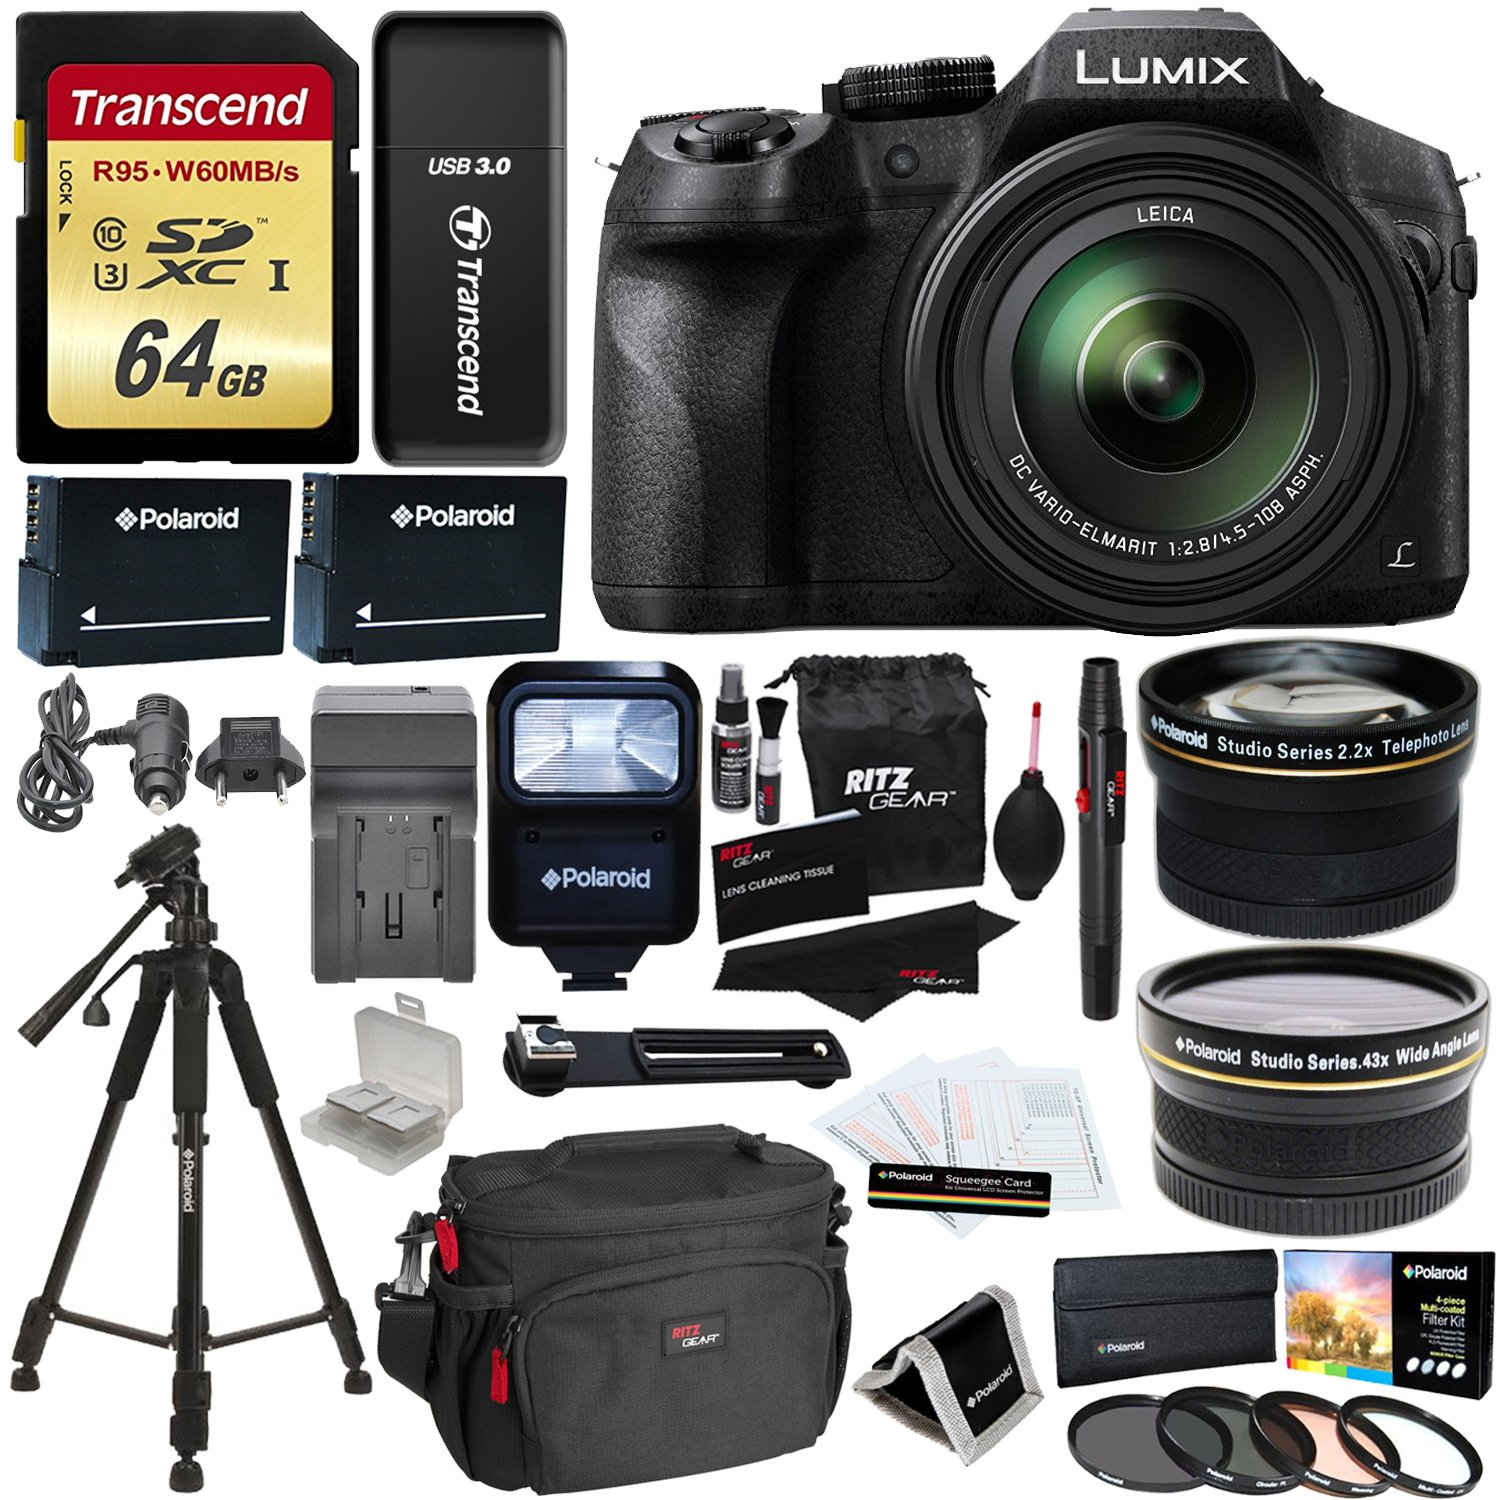 Panasonic FZ300 LUMIX DMC 4K Point & Shoot Camera Leica DC Lens 24X Zoom + Wide Angle & Telephoto Lens + 64GB + 57'' Tripod + Ritz Gear Bag + 2 Batteries + Charger + Filter + Polaroid Accessory Kit